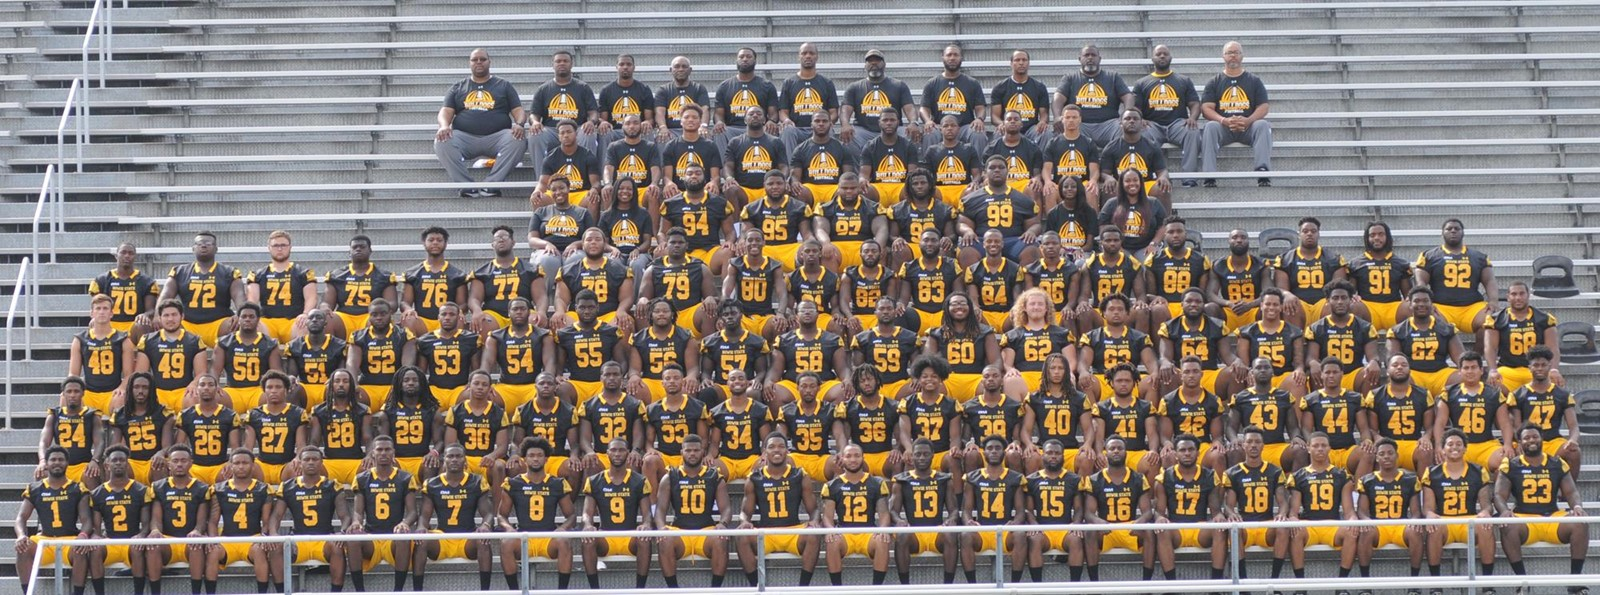 2018 Football Roster Bowie State University Athletics